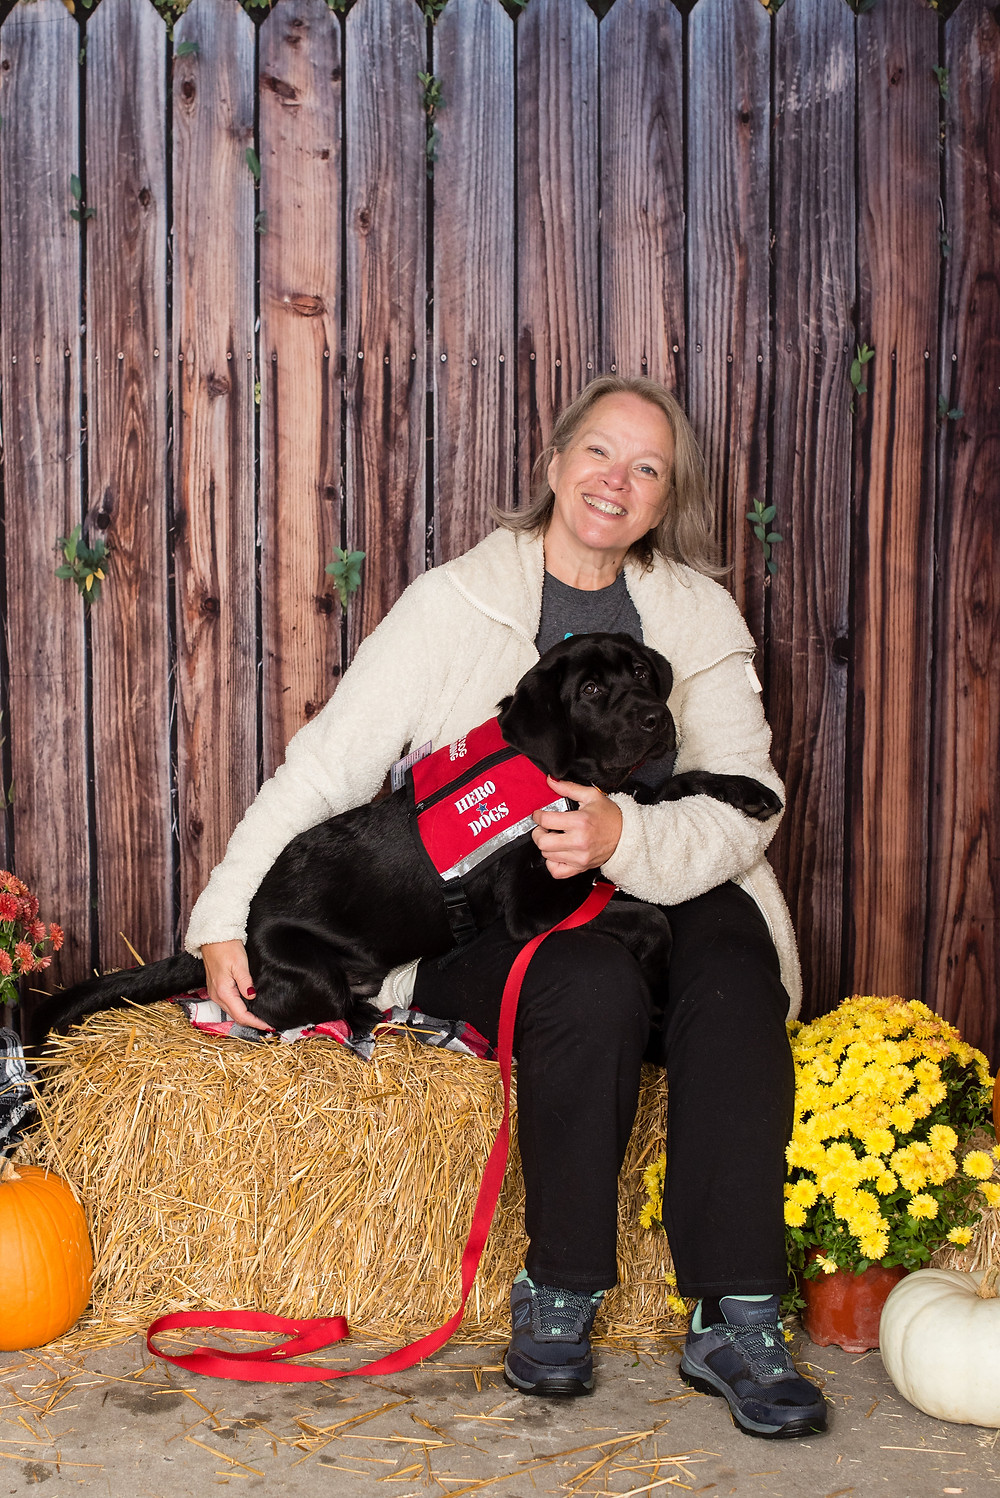 Smiling lady and her black Labrador Retriever are sitting on a hay bale surrounded by orange pumpkins and yellow flowers